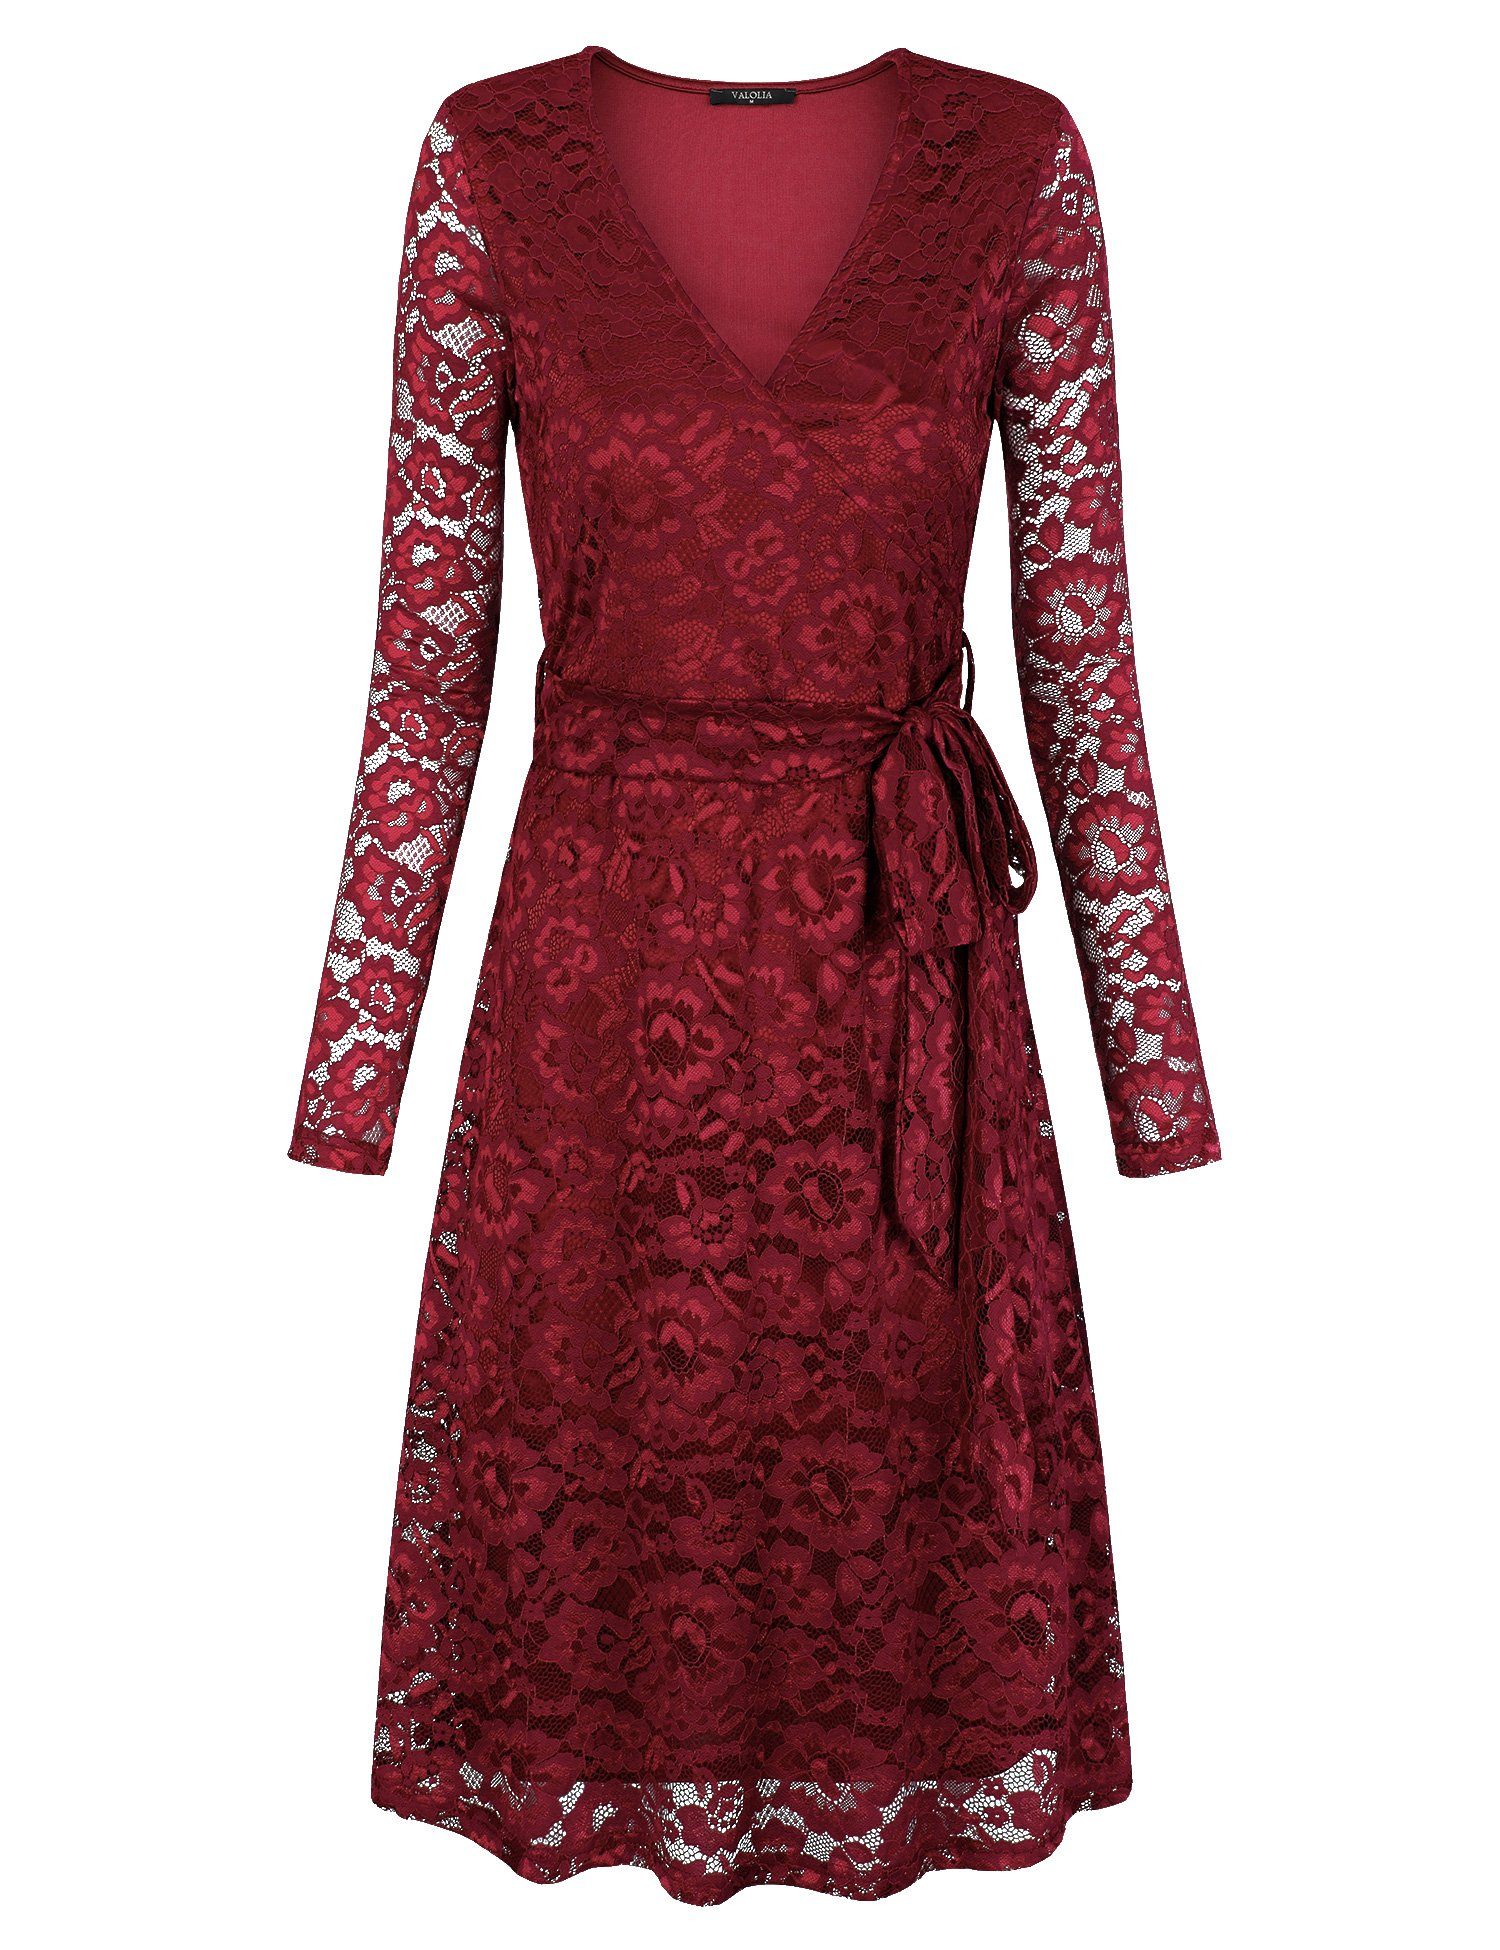 357b6f7a0c VALOLIA Women s Long Sleeve Vintage Lace Dress Cocktail Party Midi Dresses  with Lining Wine XL